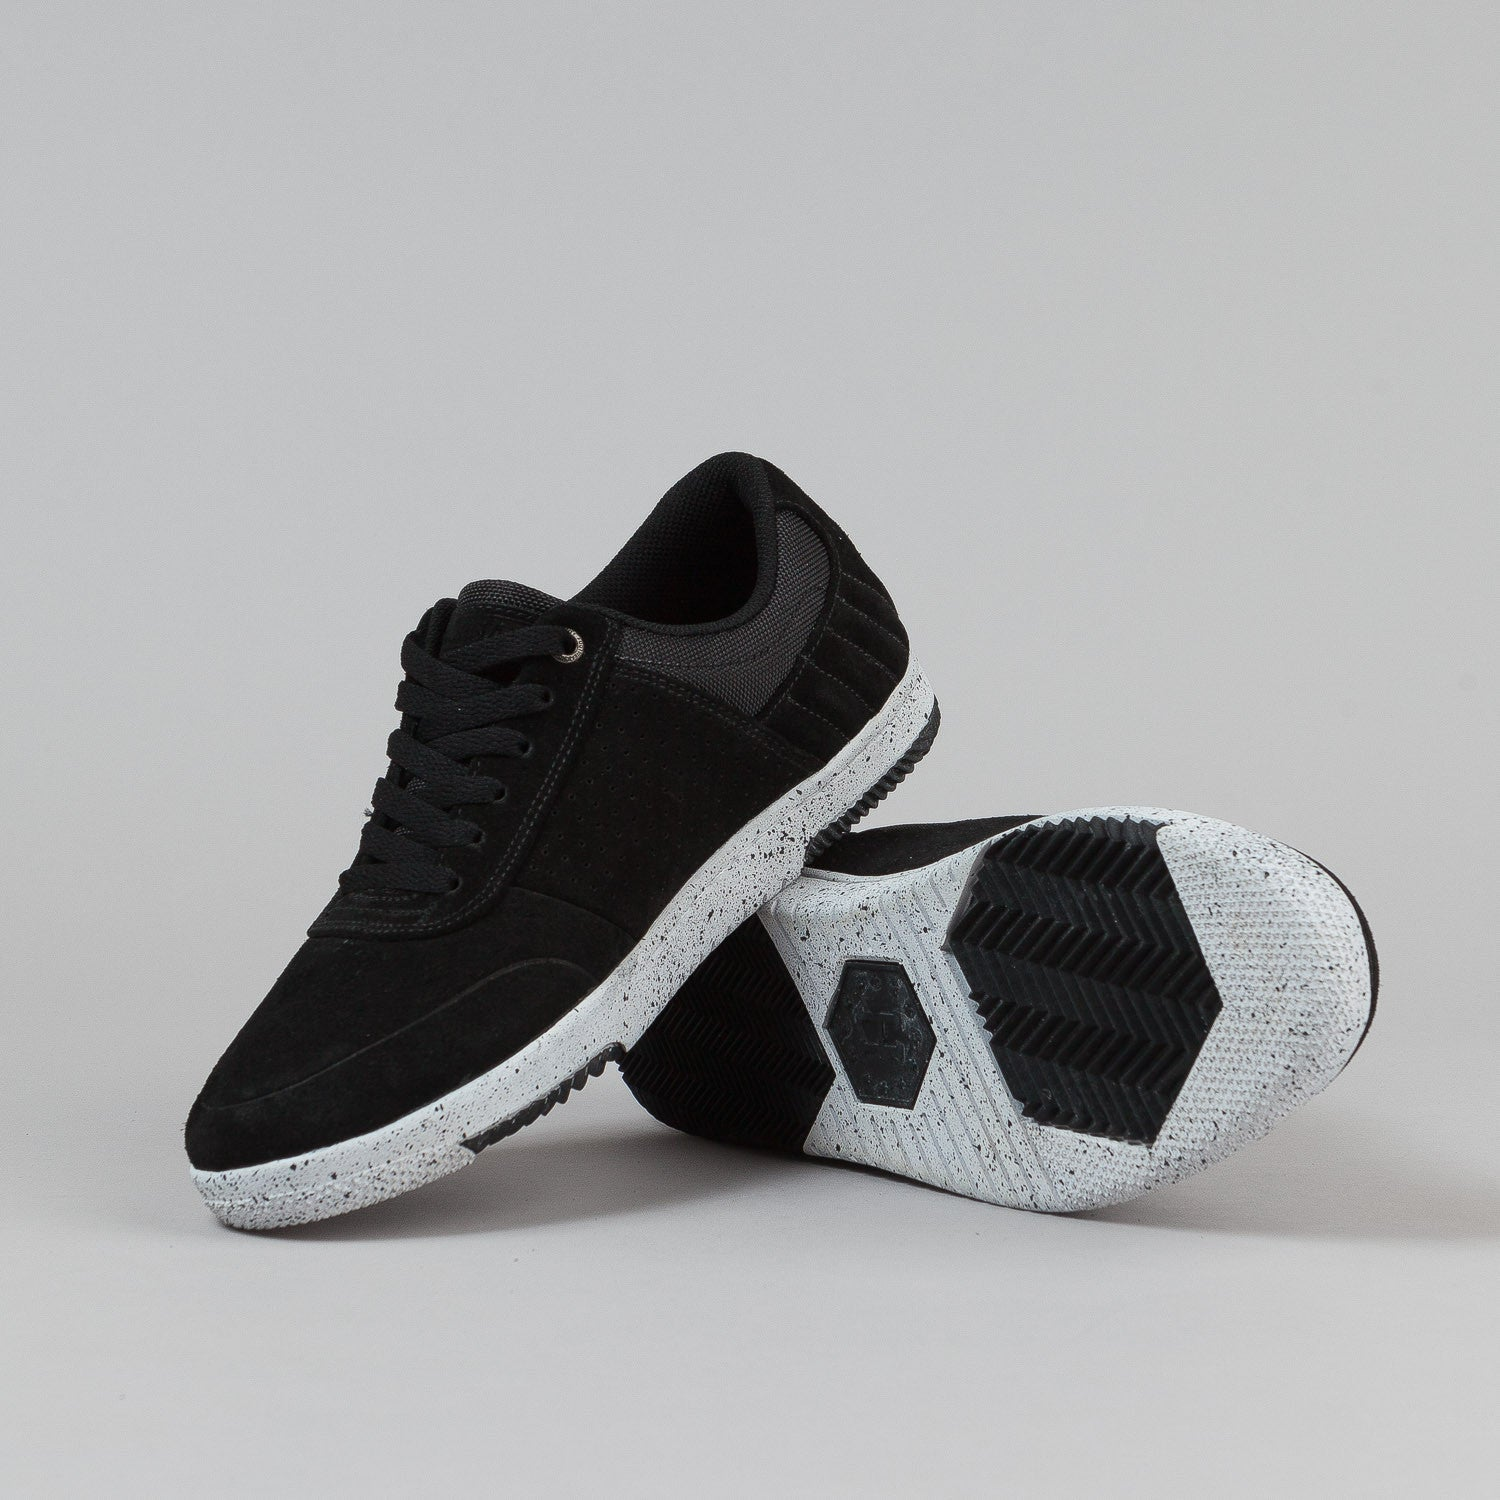 HUF HUFnagel 2 Shoes - Black / Bone White Speckle